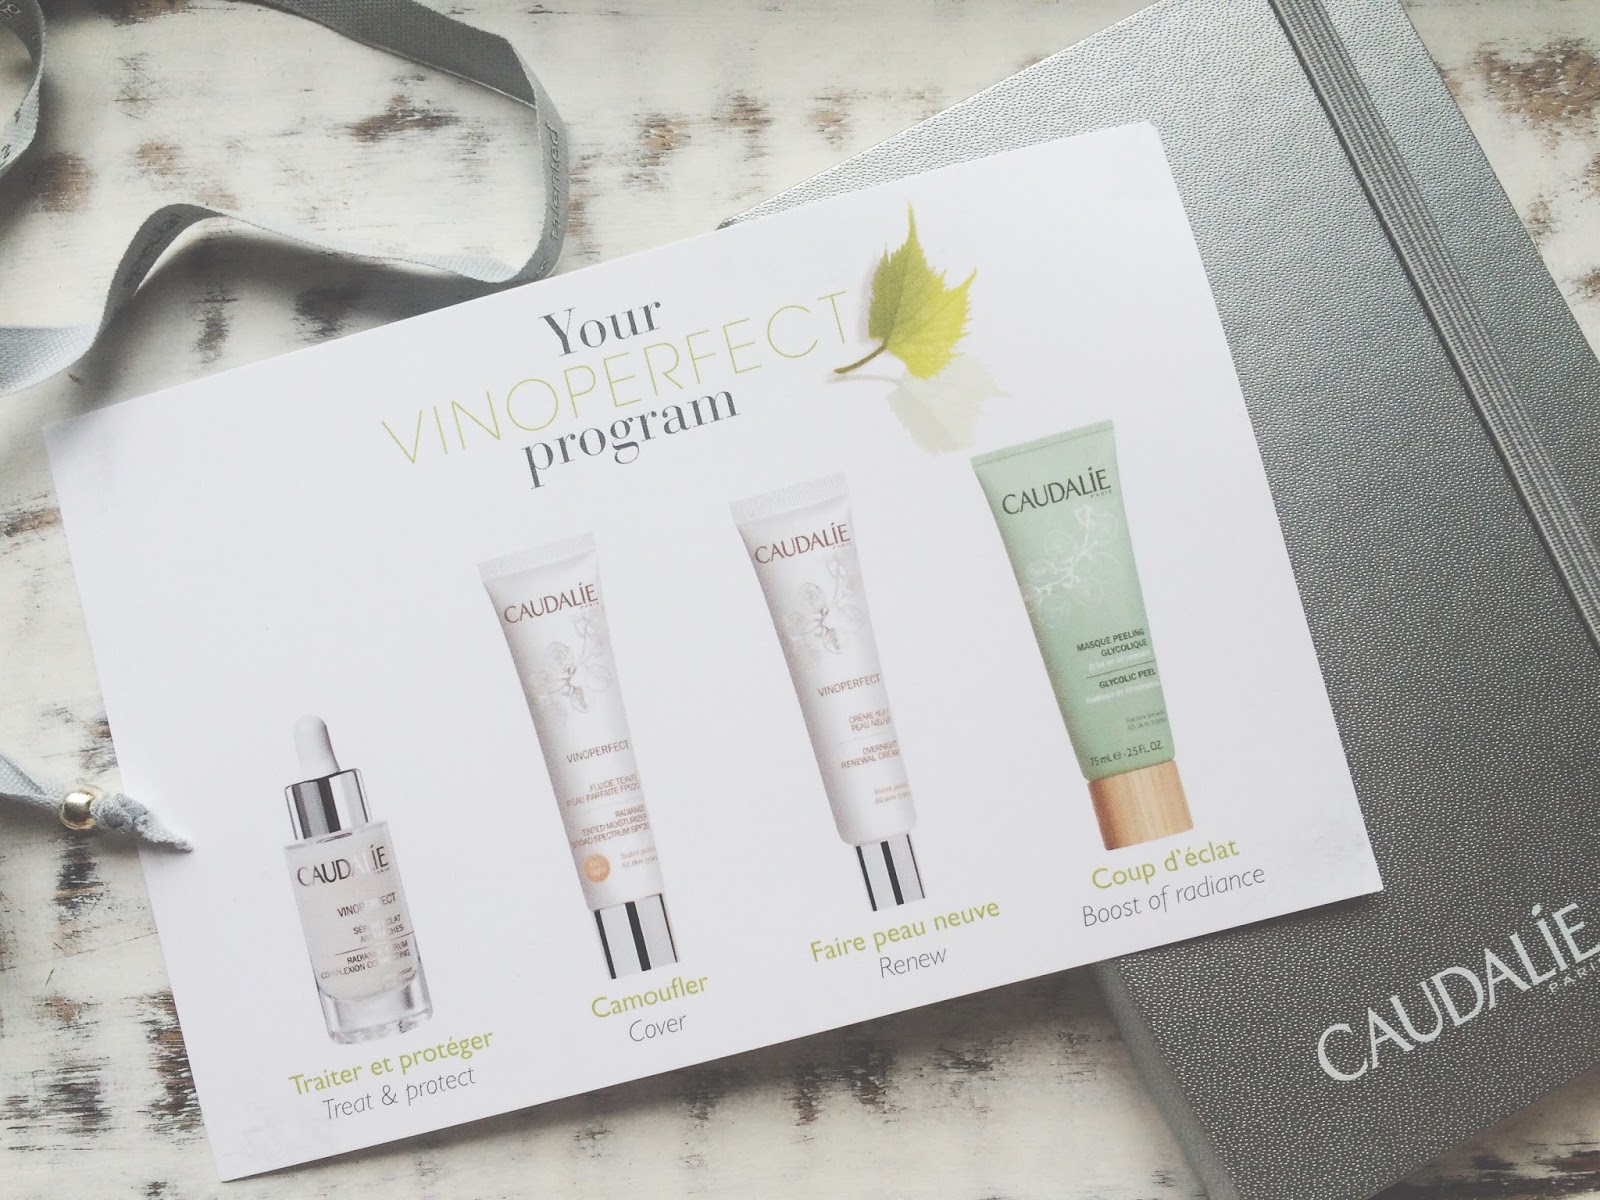 Caudalie Vinoperfect Box Vinoperfect Program